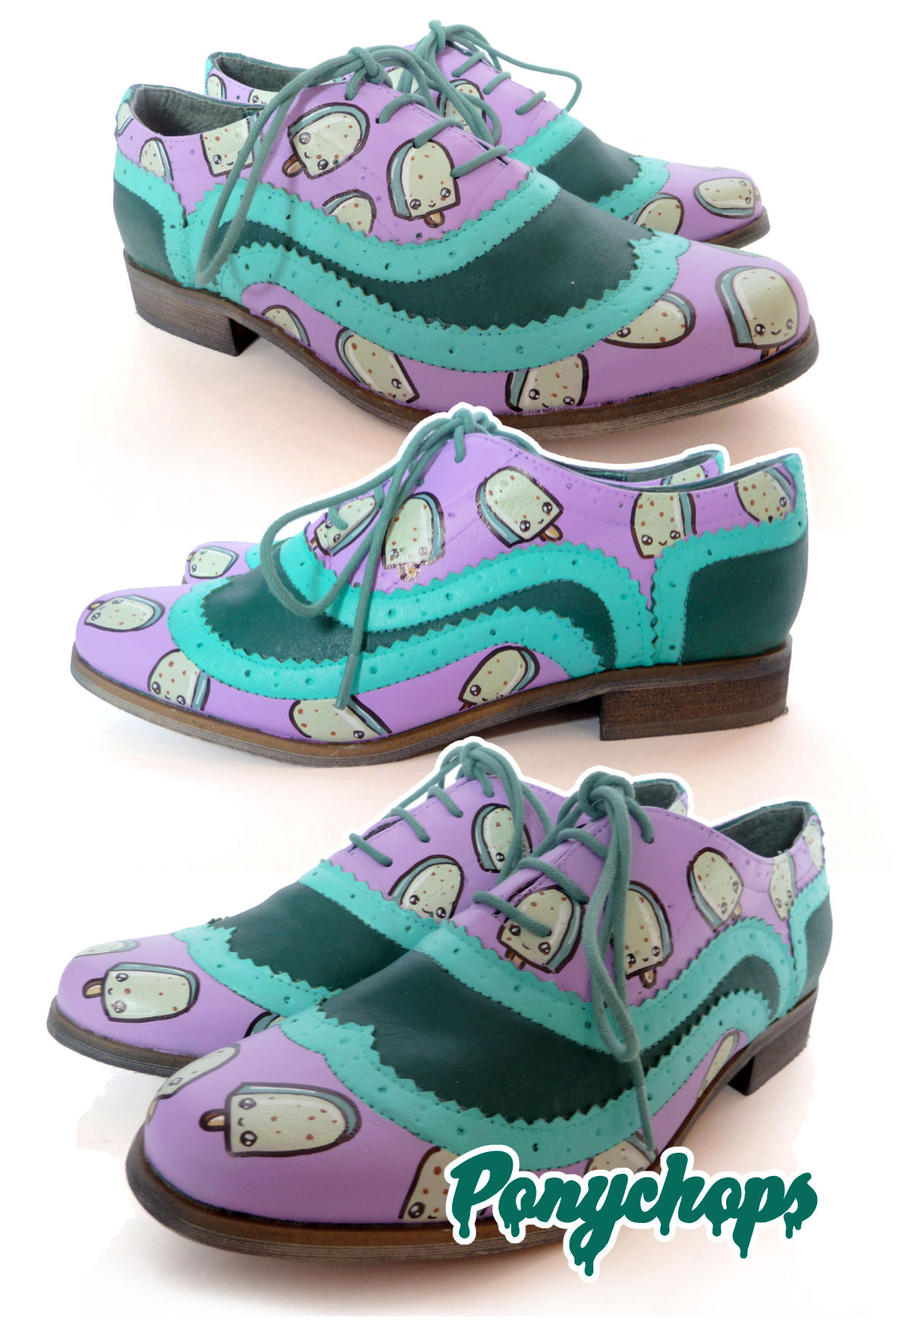 Mint Choc Chip Ice Cream Brogues by ponychops